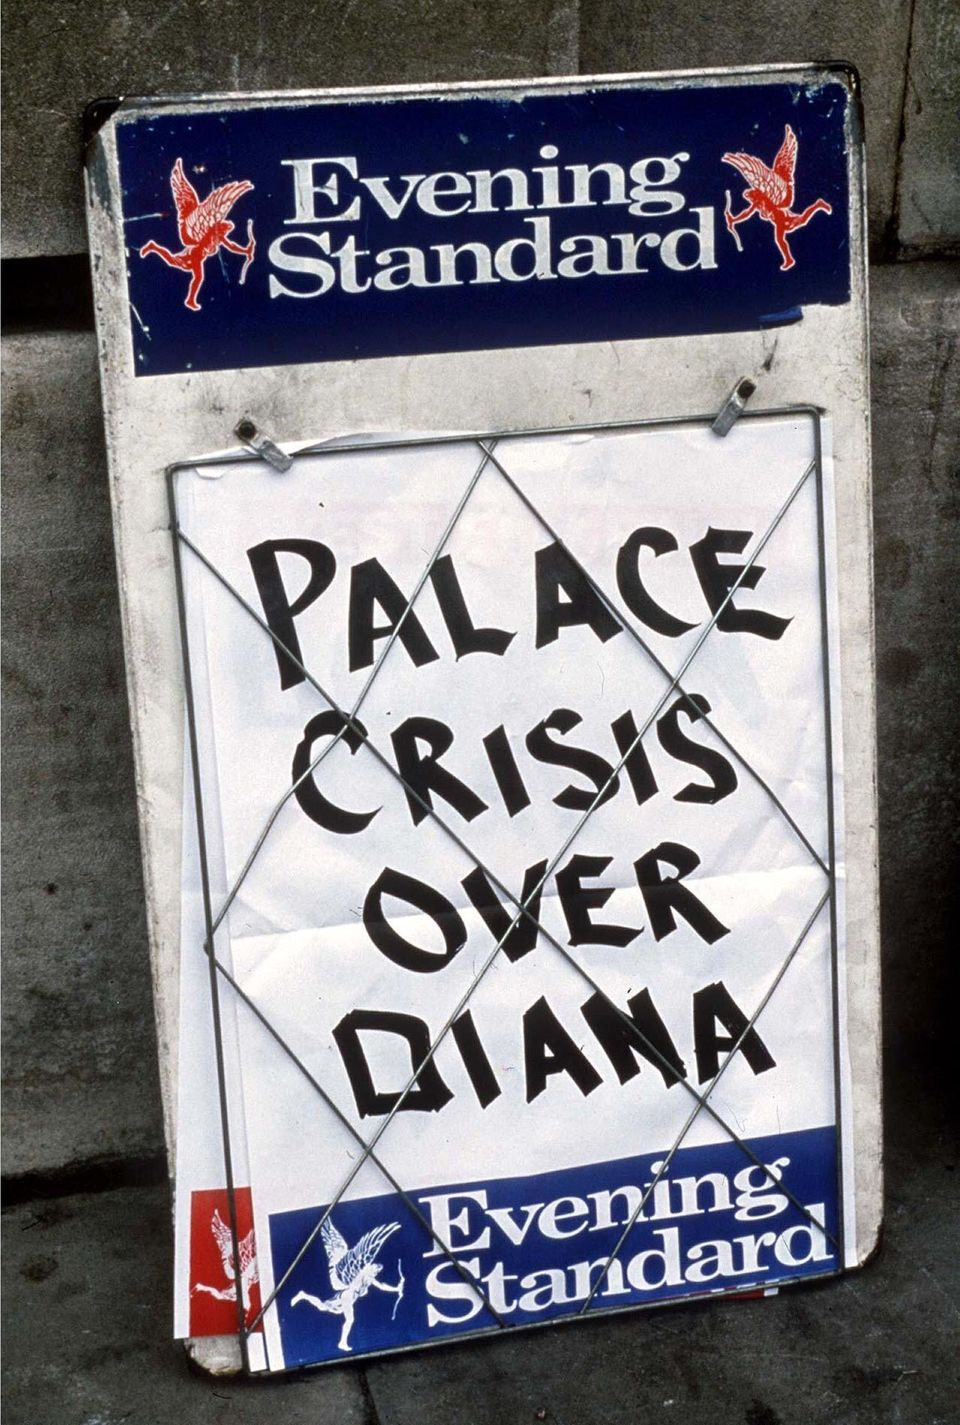 The palace was left reeling after the interview was broadcast - as this Evening Standard sign from 1995 implies